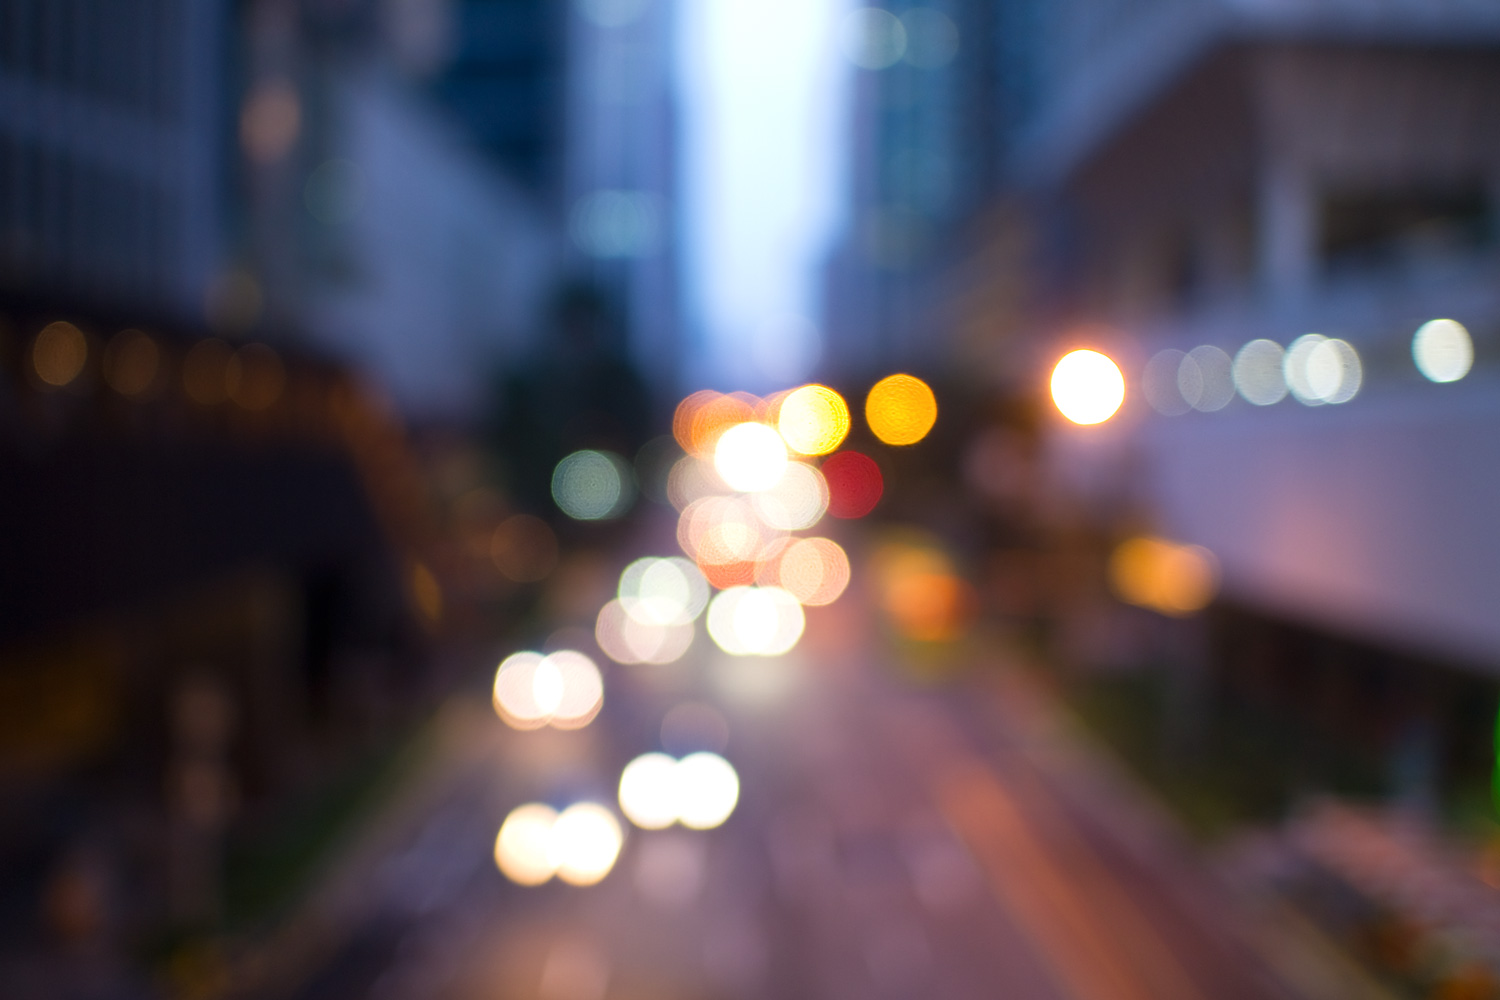 Singapore - Out of Focus Cityscape Bokeh Images at Blue Hour